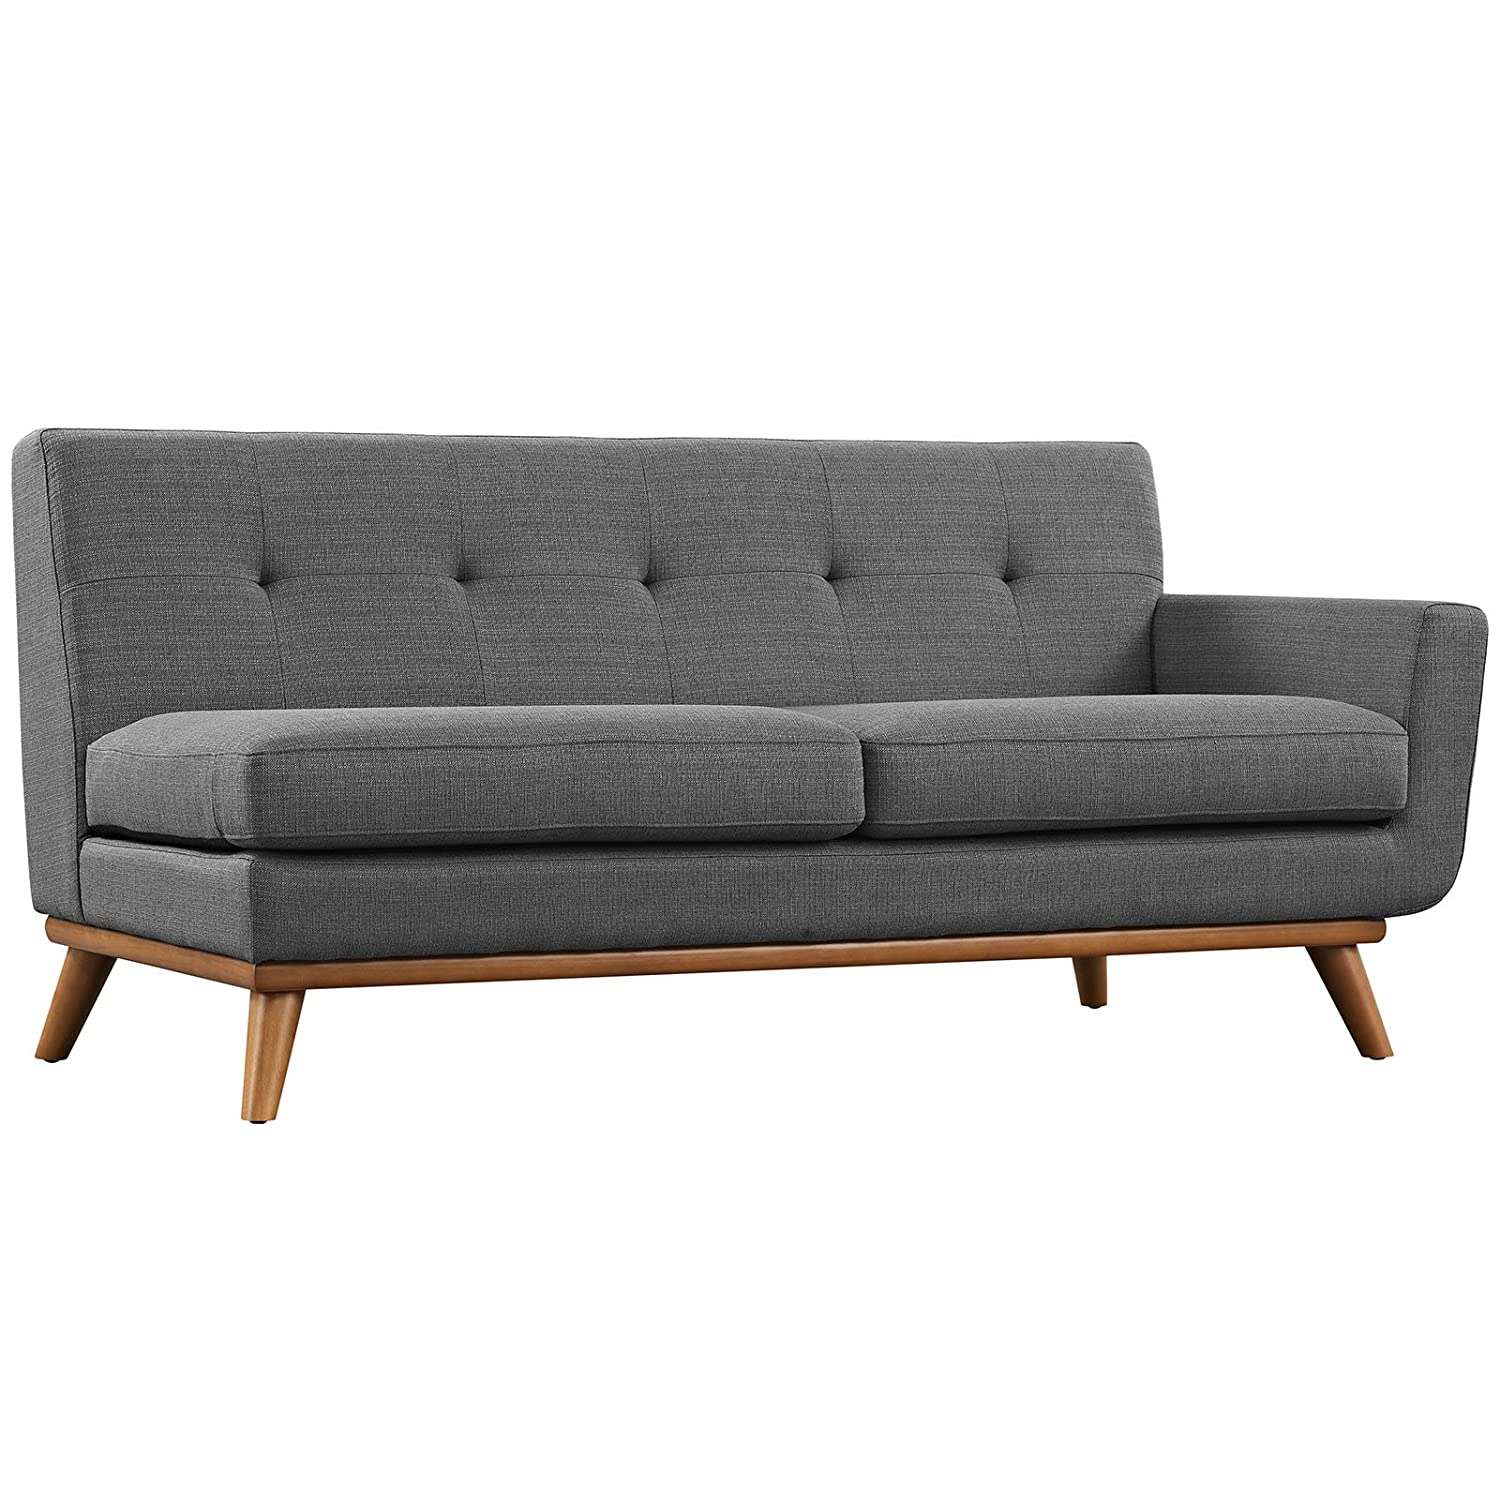 Amazon.com Modway Engage Mid-Century Modern Upholstered Fabric L-Shaped Sectional Sofa In Gray Kitchen u0026 Dining  sc 1 st  Amazon.com : gray l shaped sectional - Sectionals, Sofas & Couches